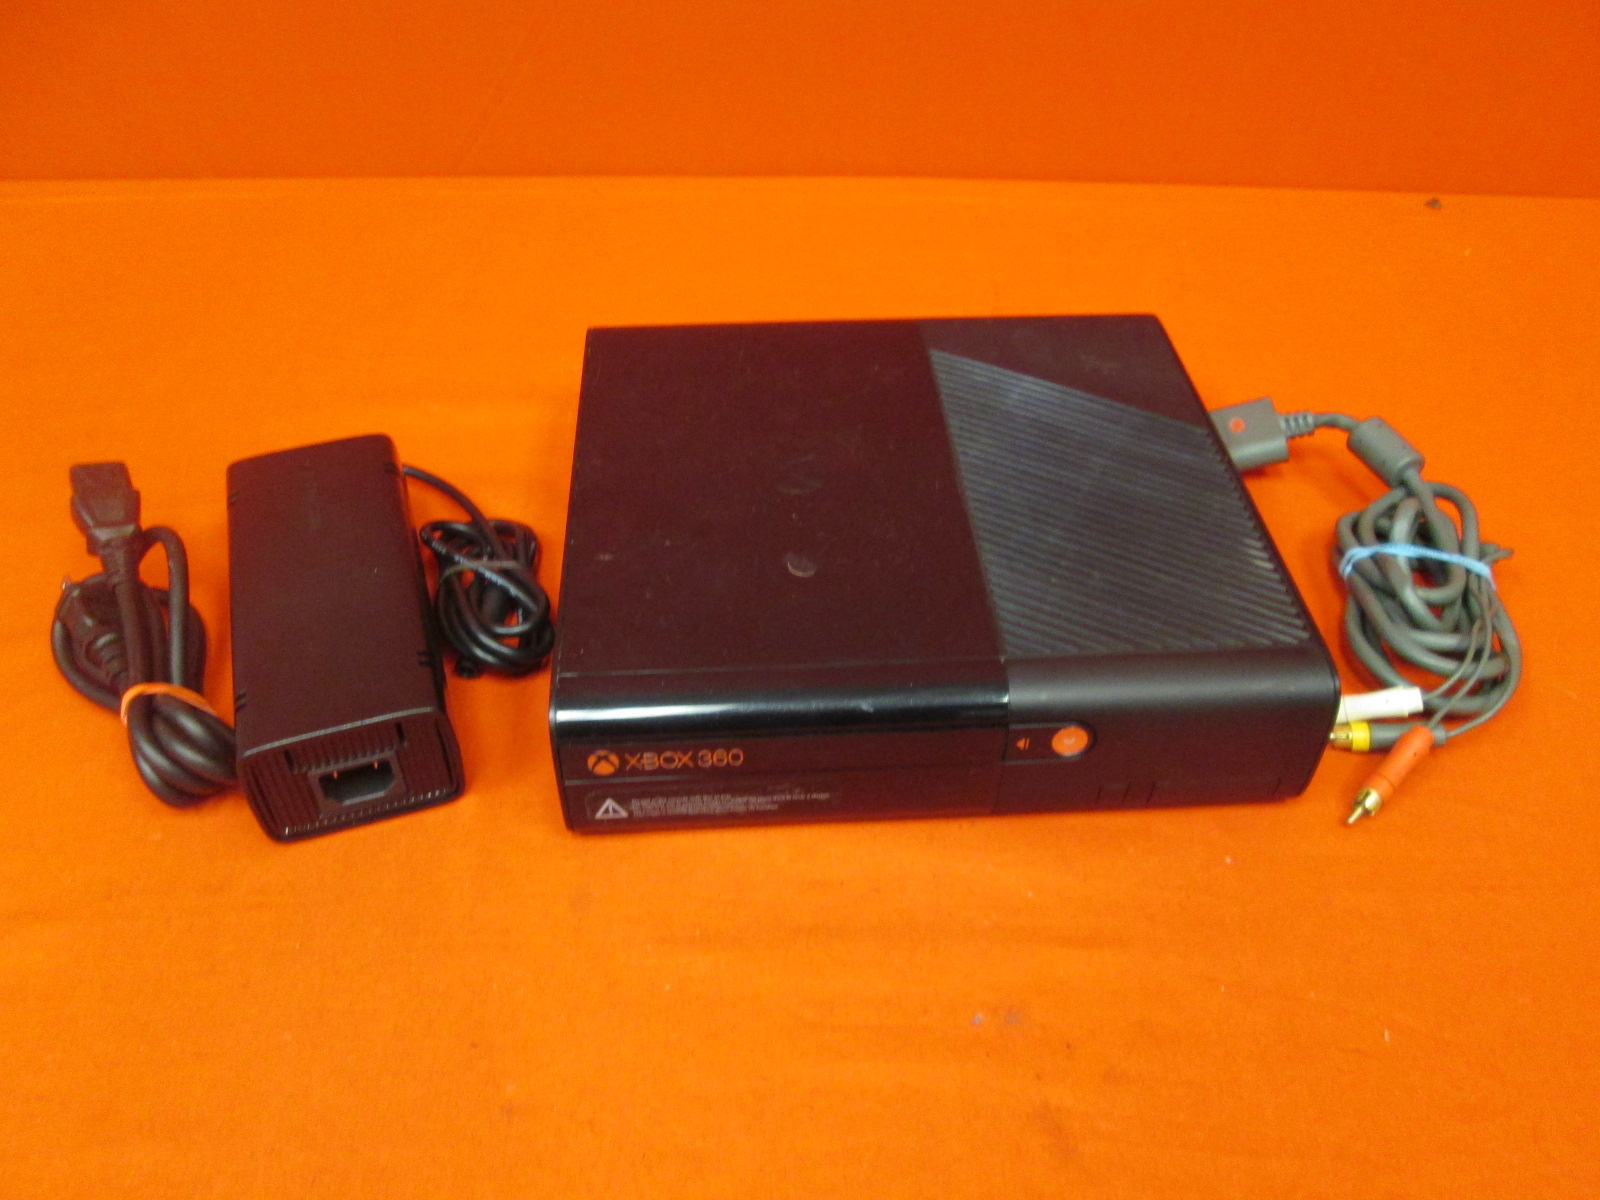 Microsoft Xbox 360 E Video Game Console